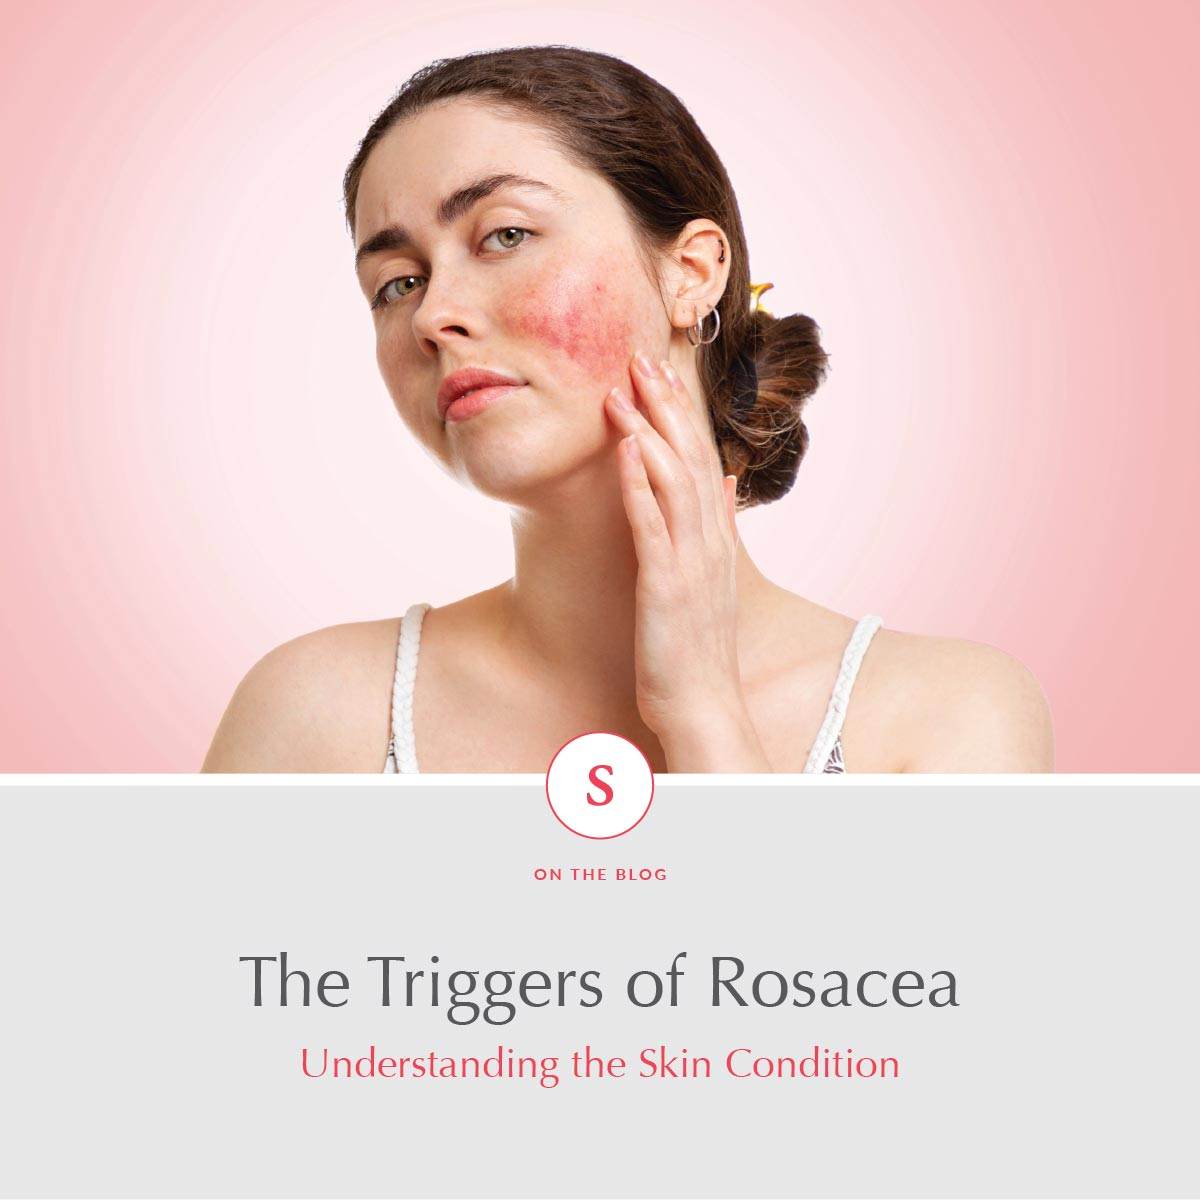 The Triggers of Rosacea